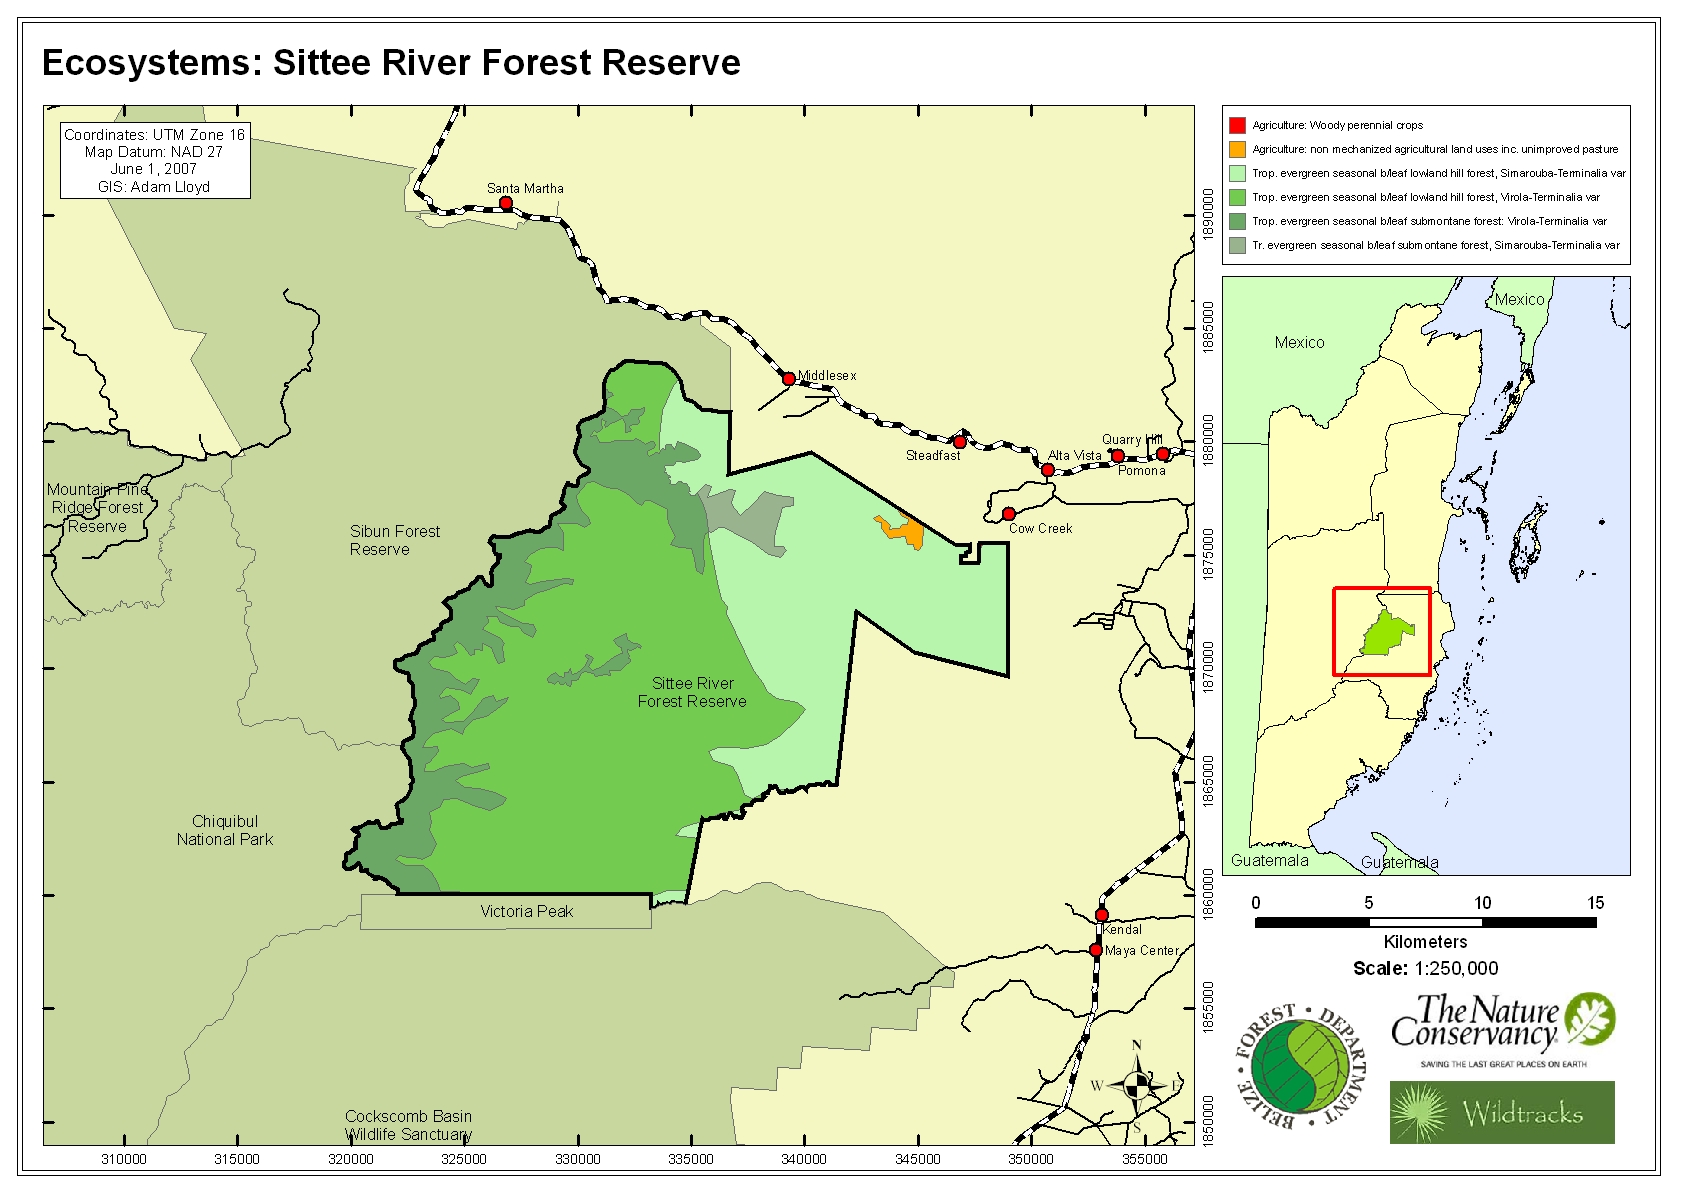 Ecosystems: Sittee River Forest Reserve